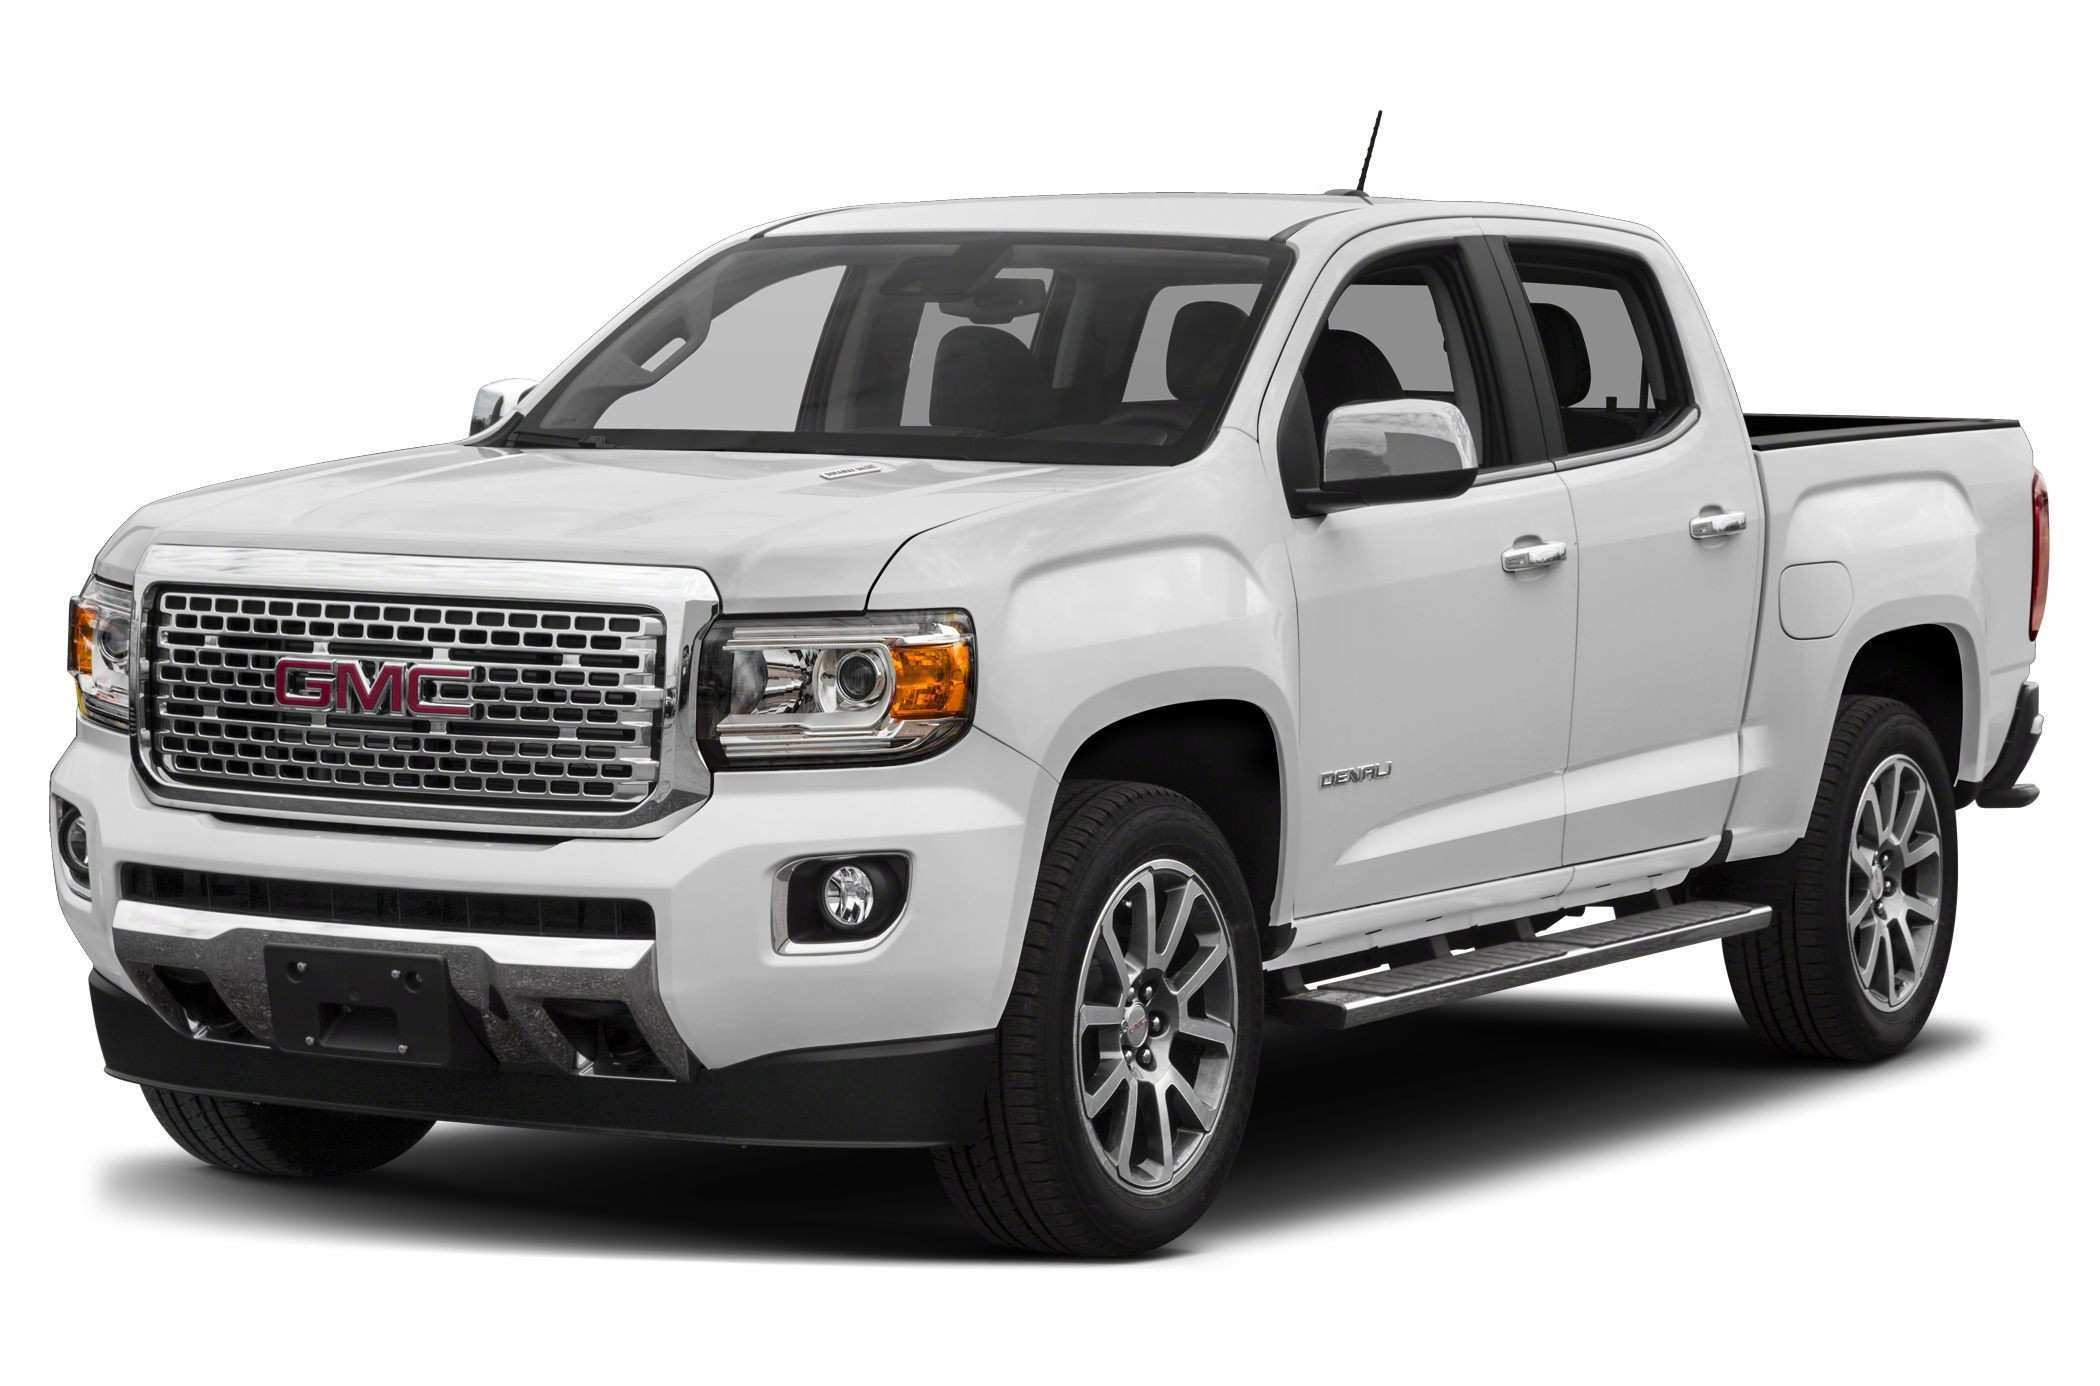 43 Gallery of 2019 Gmc Canyon Forum Concept Redesign And Review Concept with 2019 Gmc Canyon Forum Concept Redesign And Review